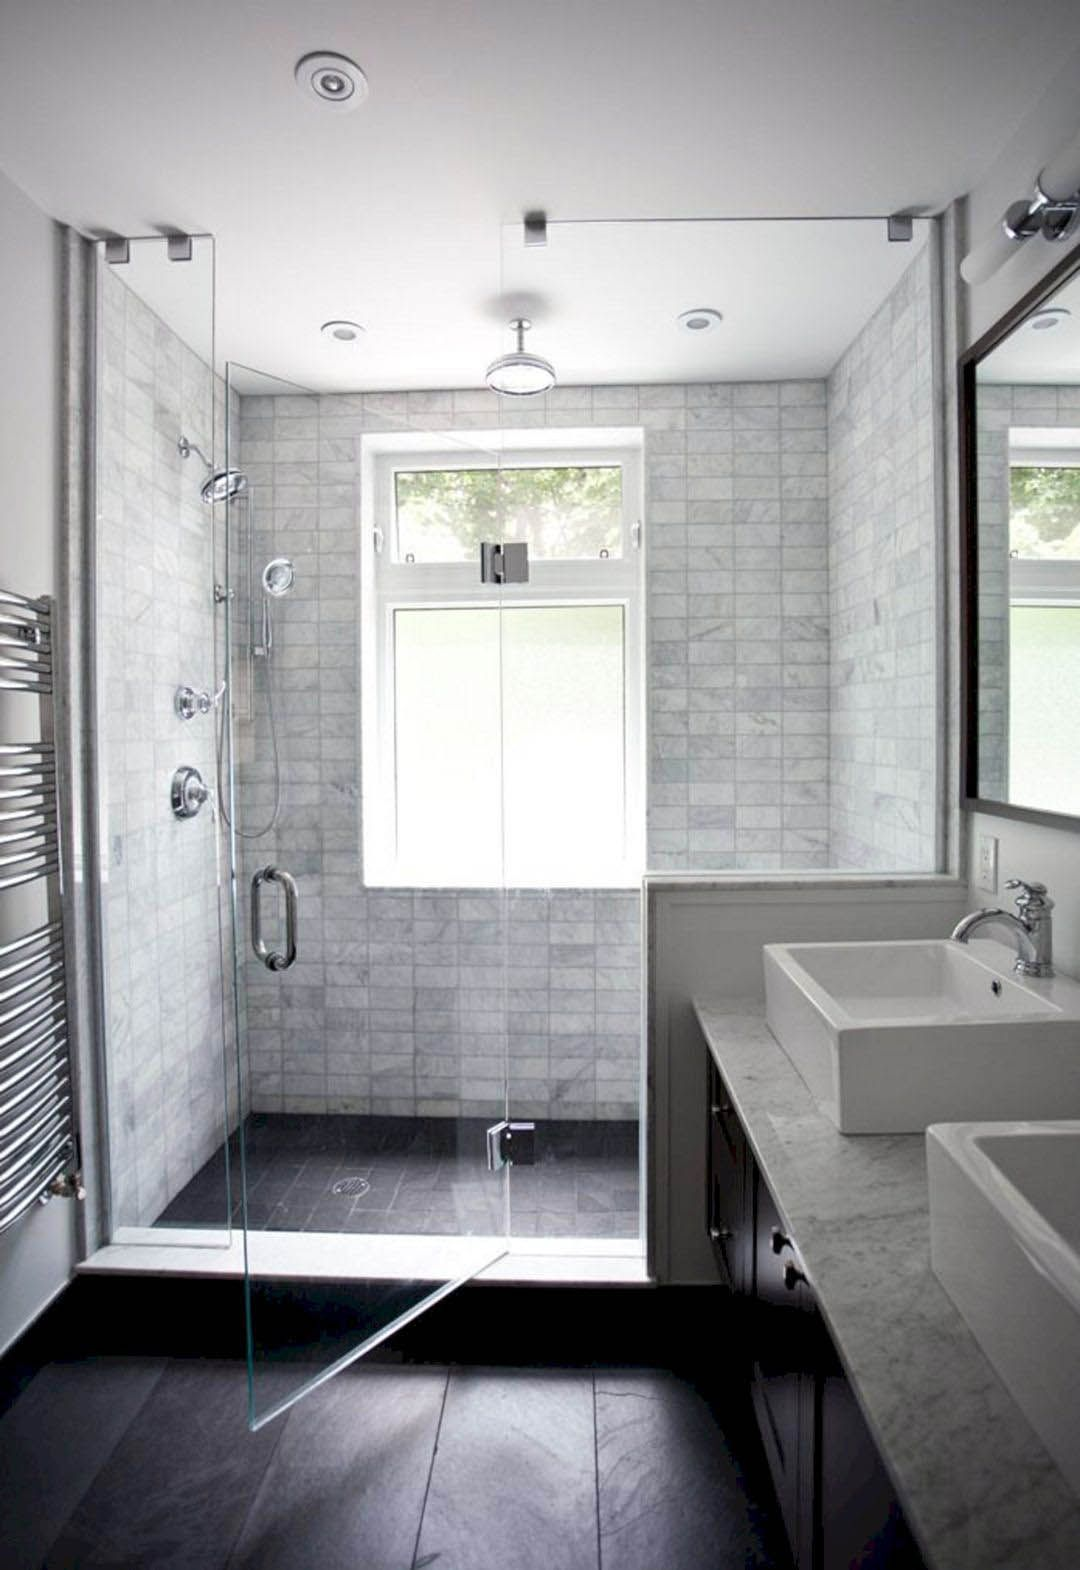 The Best And Easiest Bathroom Standing Shower Ideas Only On This Page Window In Shower Bathroom Remodel Master Small Bathroom Remodel